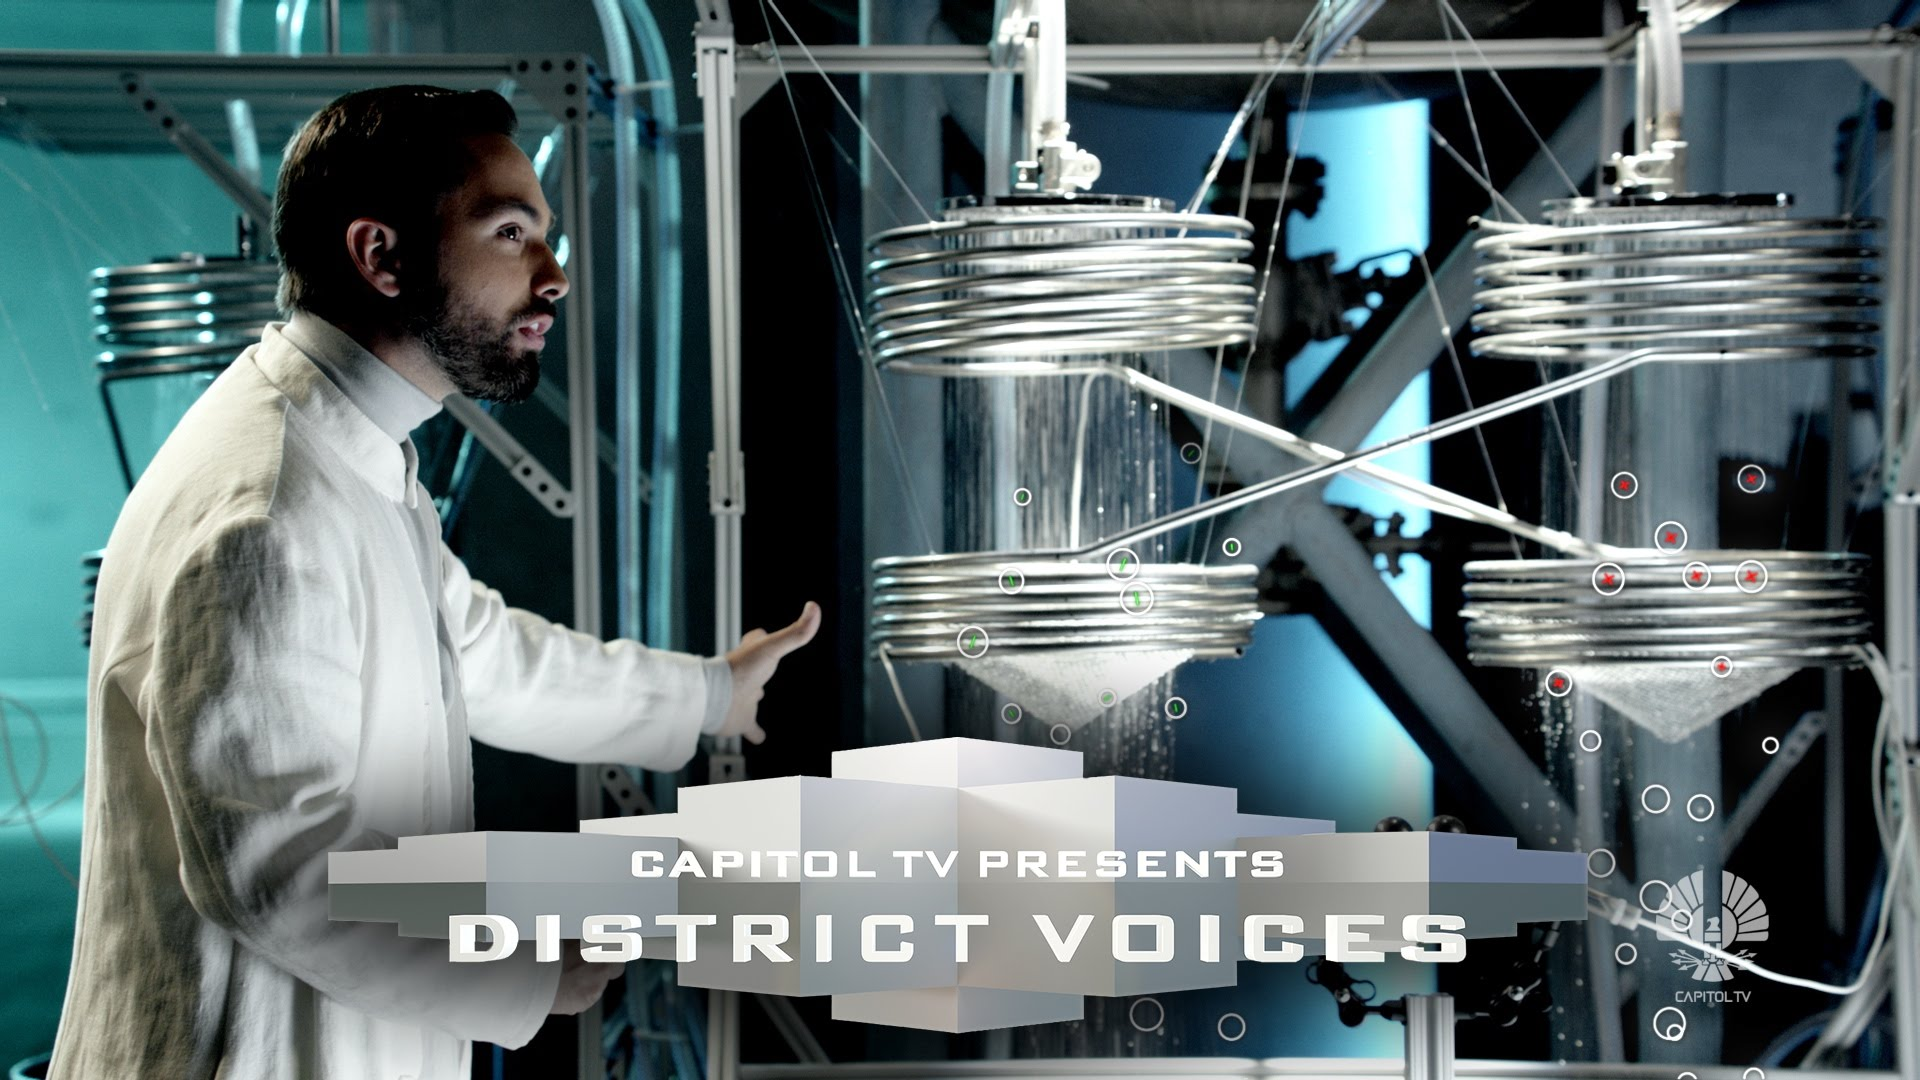 CapitolTV's DISTRICT VOICES – District 5: Electric Sparks From Falling Water